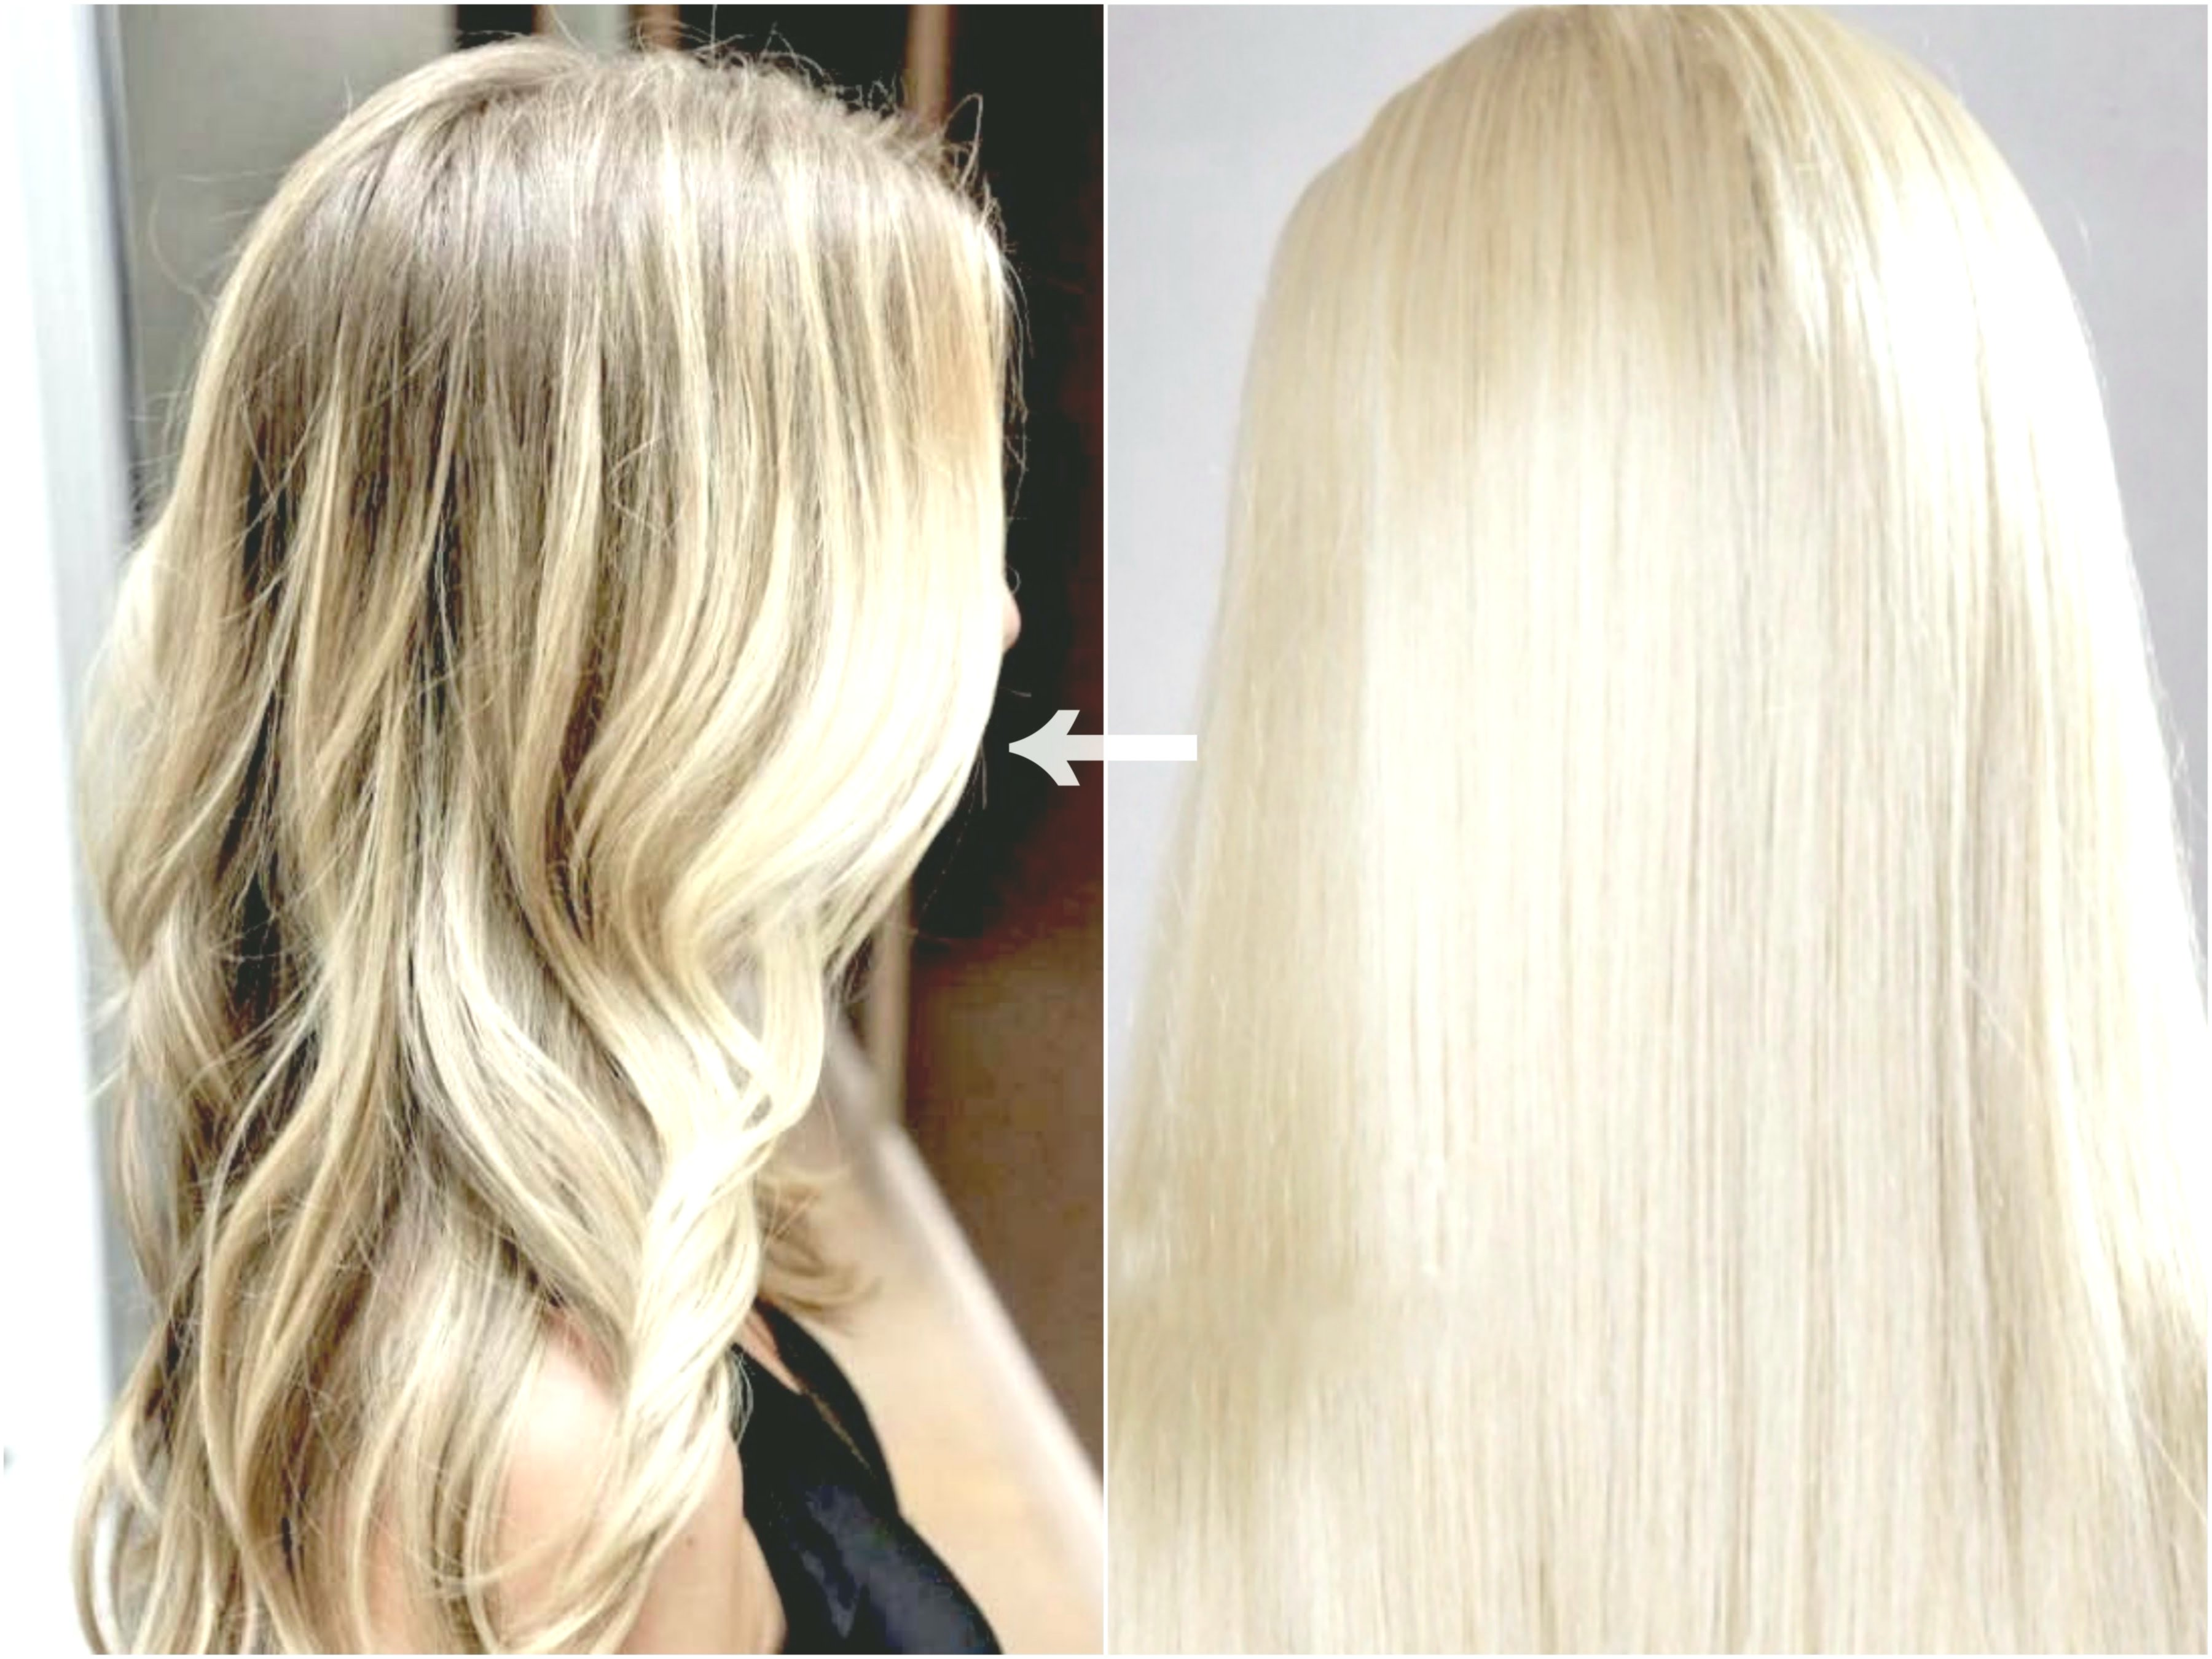 contemporary bleached hair dyeing photo Sensational bleached hair dyeing pattern